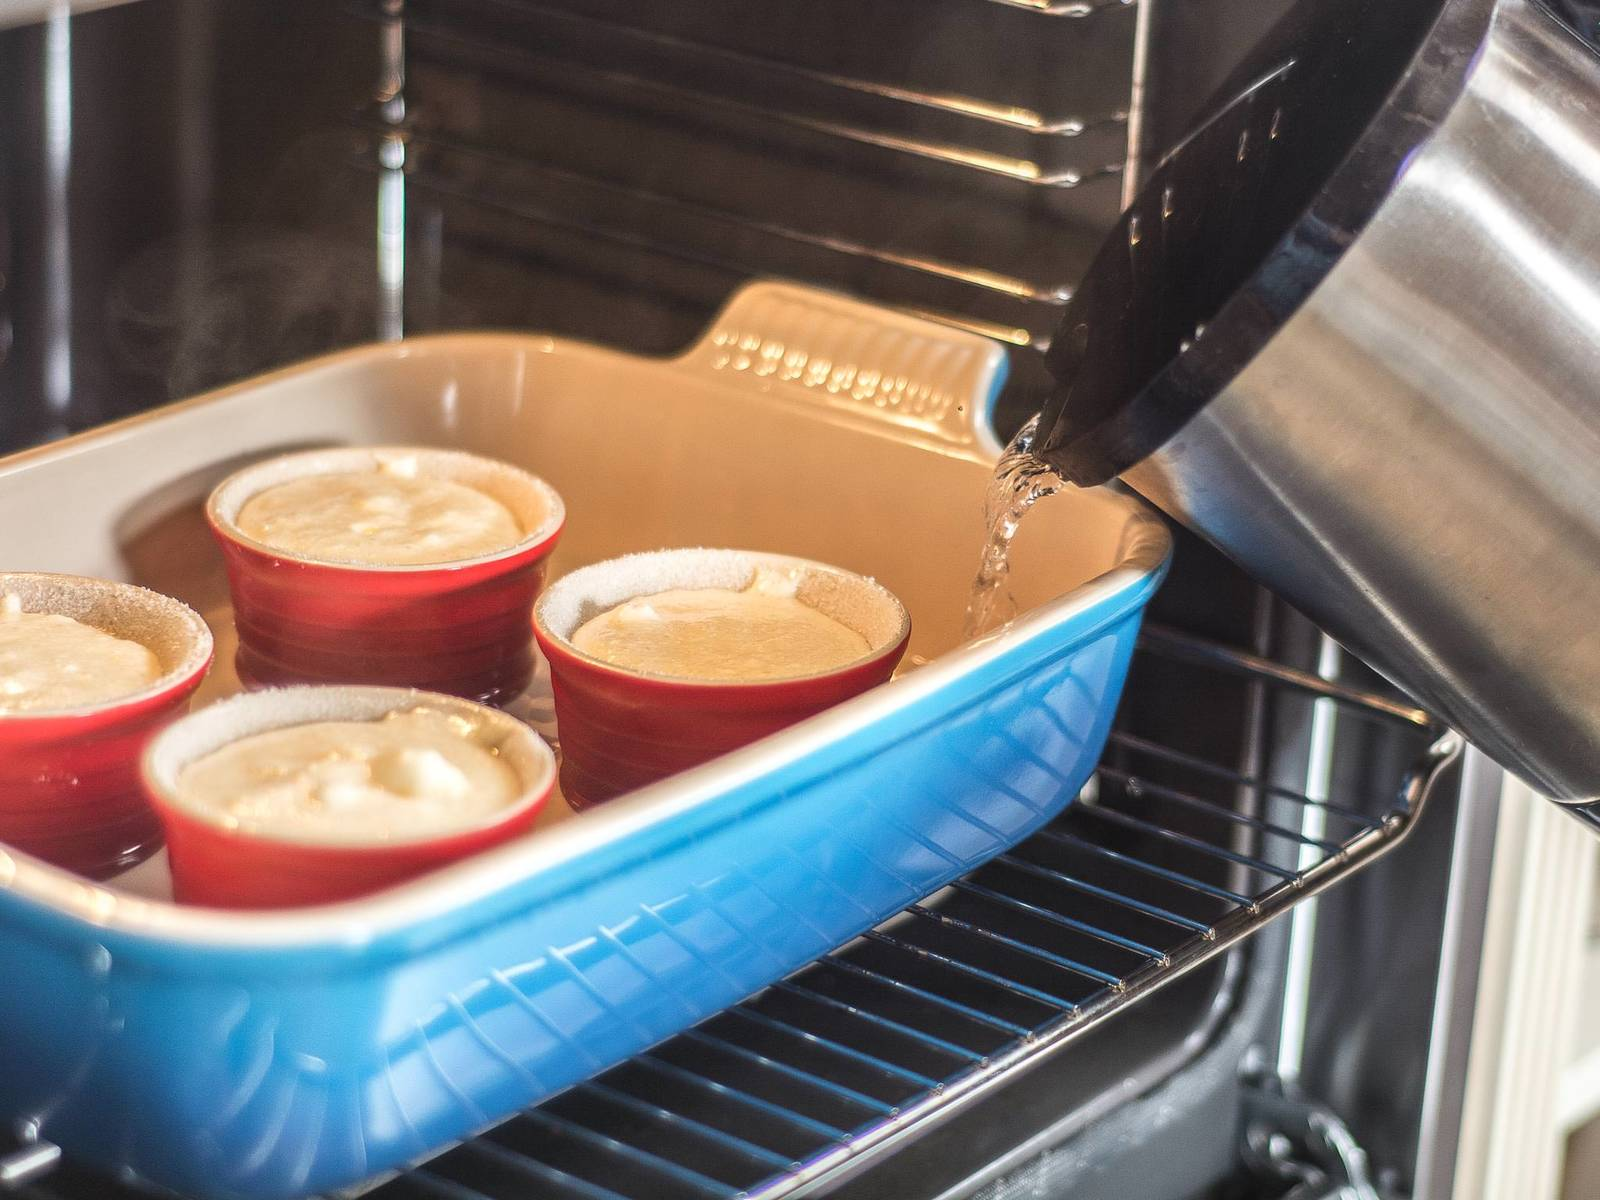 Bake soufflés in a water bath in a preheated oven at 180°C/ 355°F for approx. 22 - 25 min. Serve immediately after baking, as the soufflé might sink. Garnish with confectioner's sugar.